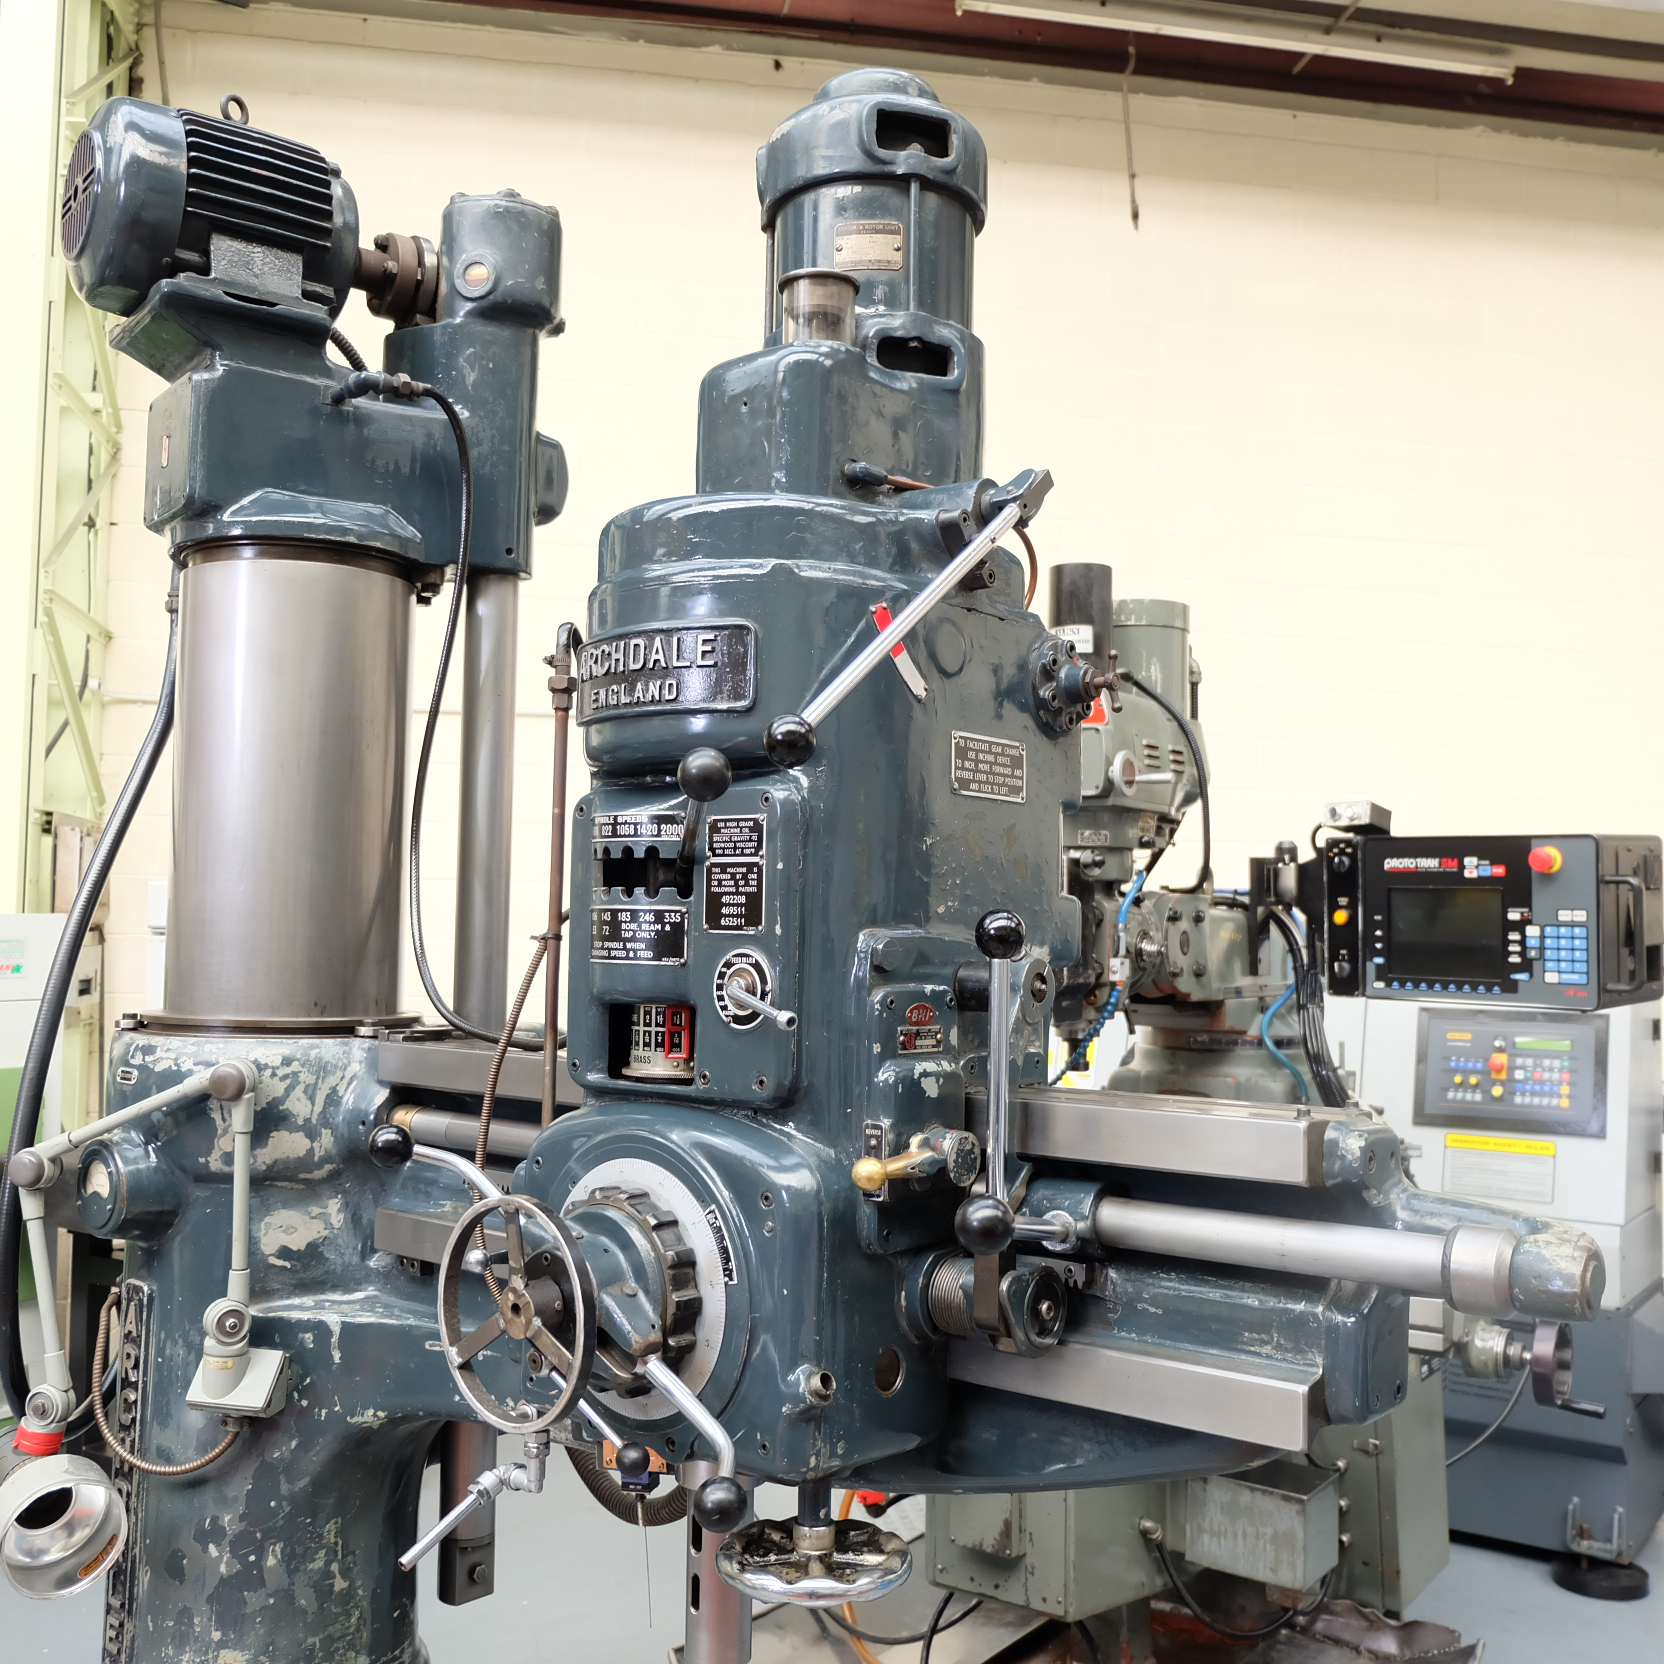 """Archdale: 3'6"""" Radial Arm Drill. Spindle Speeds 40-2000rpm. - Image 2 of 8"""